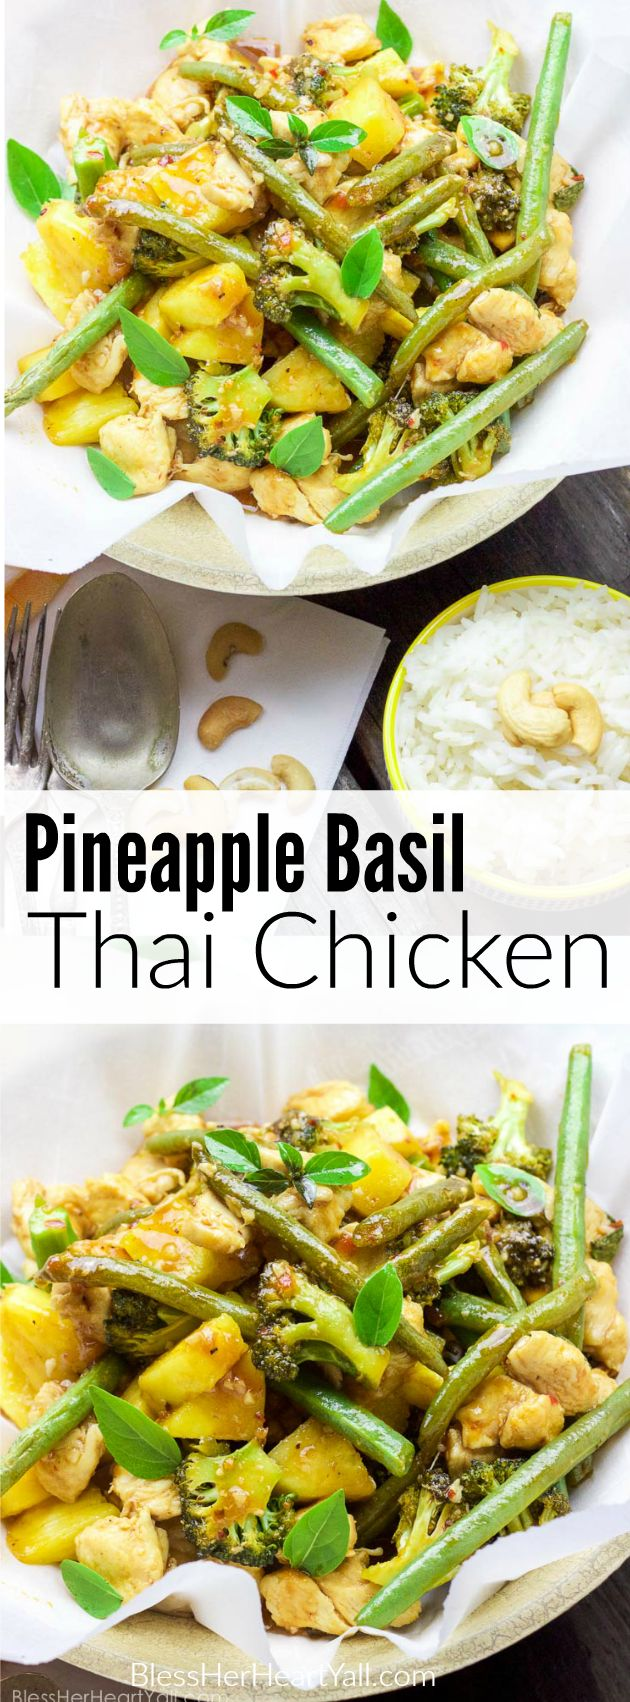 This 25 minute pineapple basil thai chicken is a simple, refreshing, and quick one-pot meal that's perfect when craving something asian-inspired... with a sweet twist!